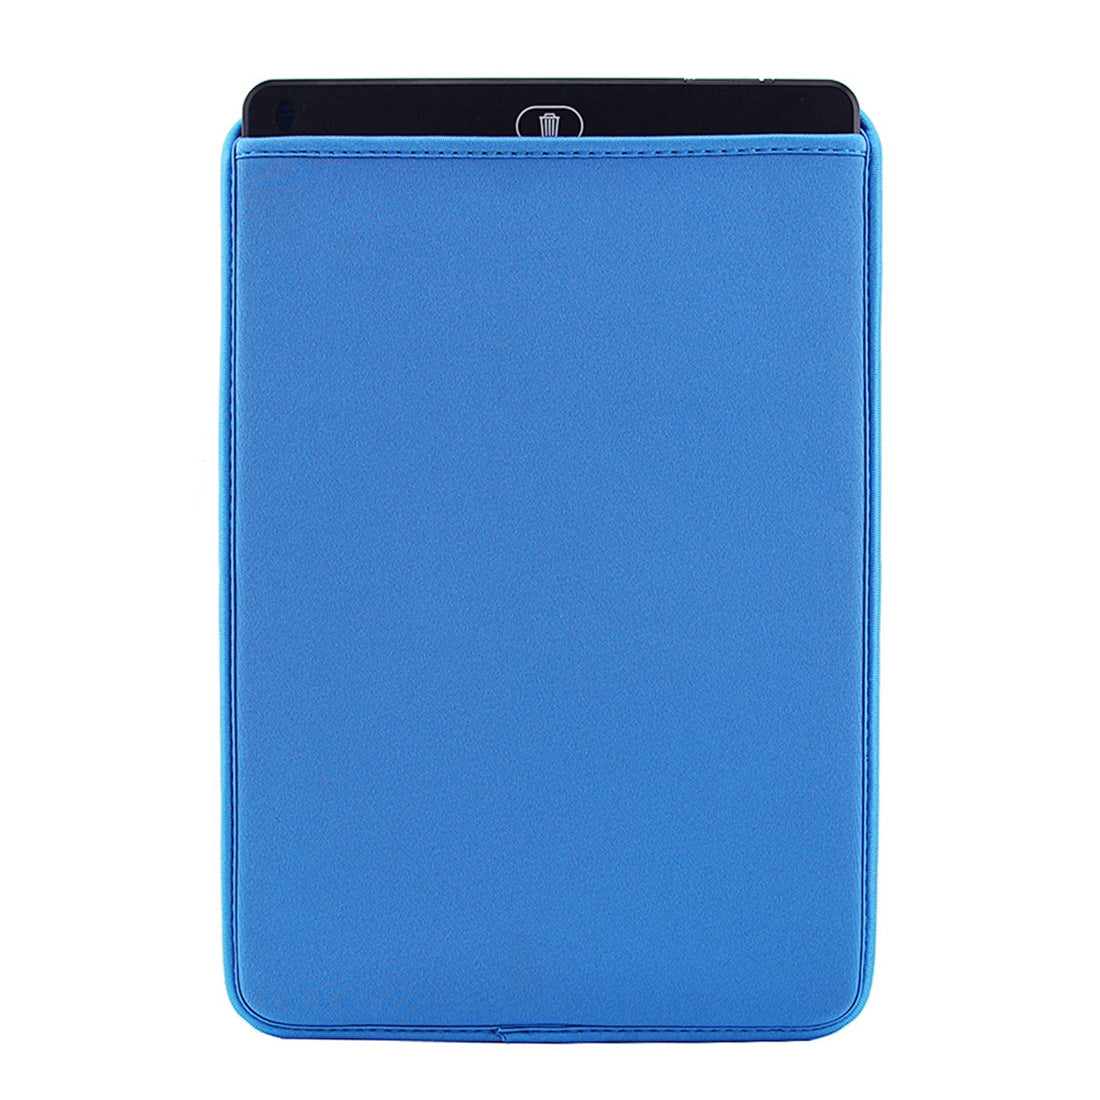 Replacement Protective Sleeve Case Bag for CHUYI 12 inch LCD Writing Tablet